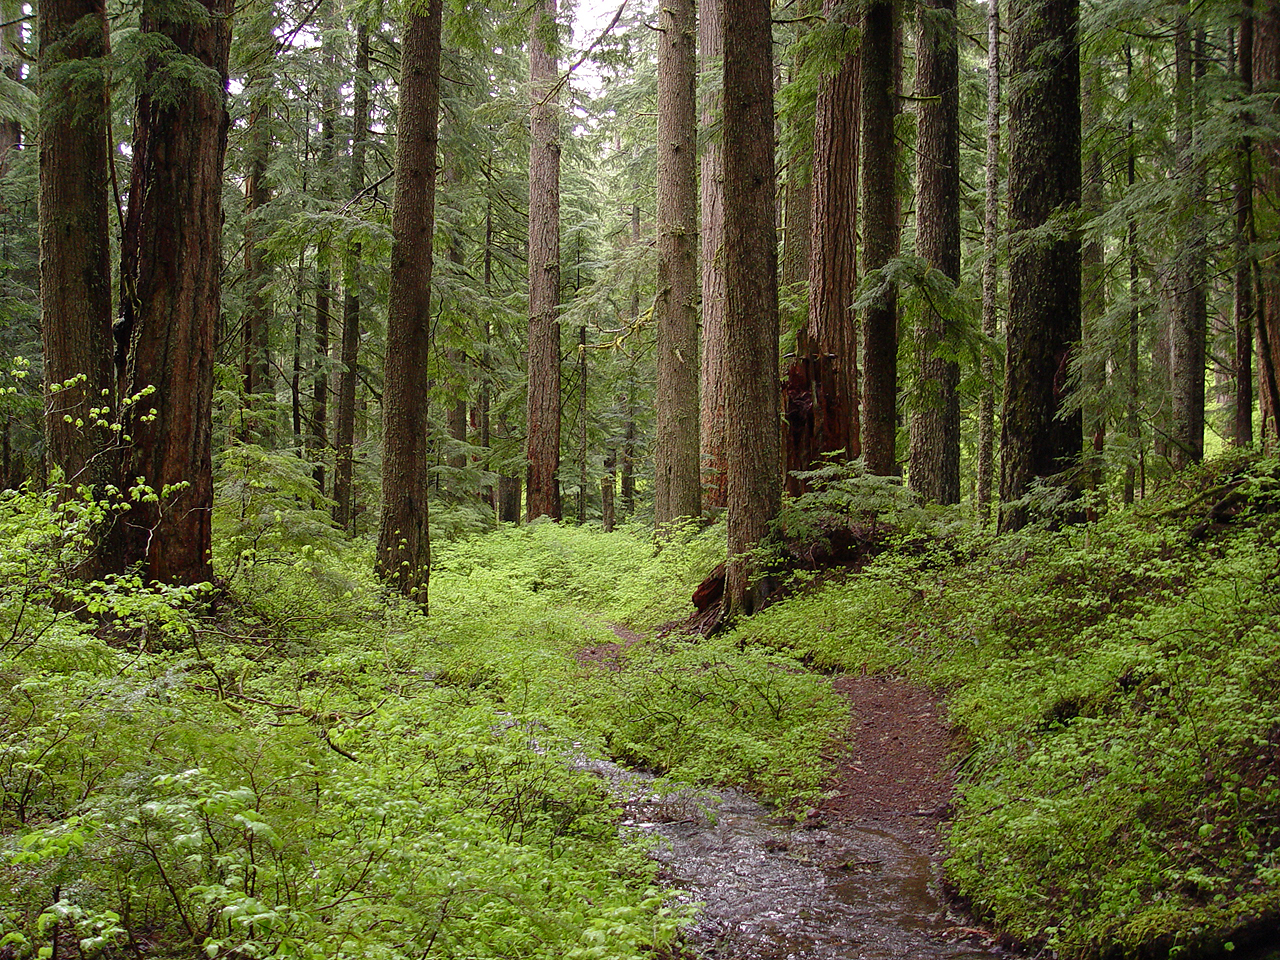 File:Creek and old-growth forest-Larch Mountain.jpg - Wikipedia, the ...: en.wikipedia.org/wiki/File:Creek_and_old-growth_forest-Larch...